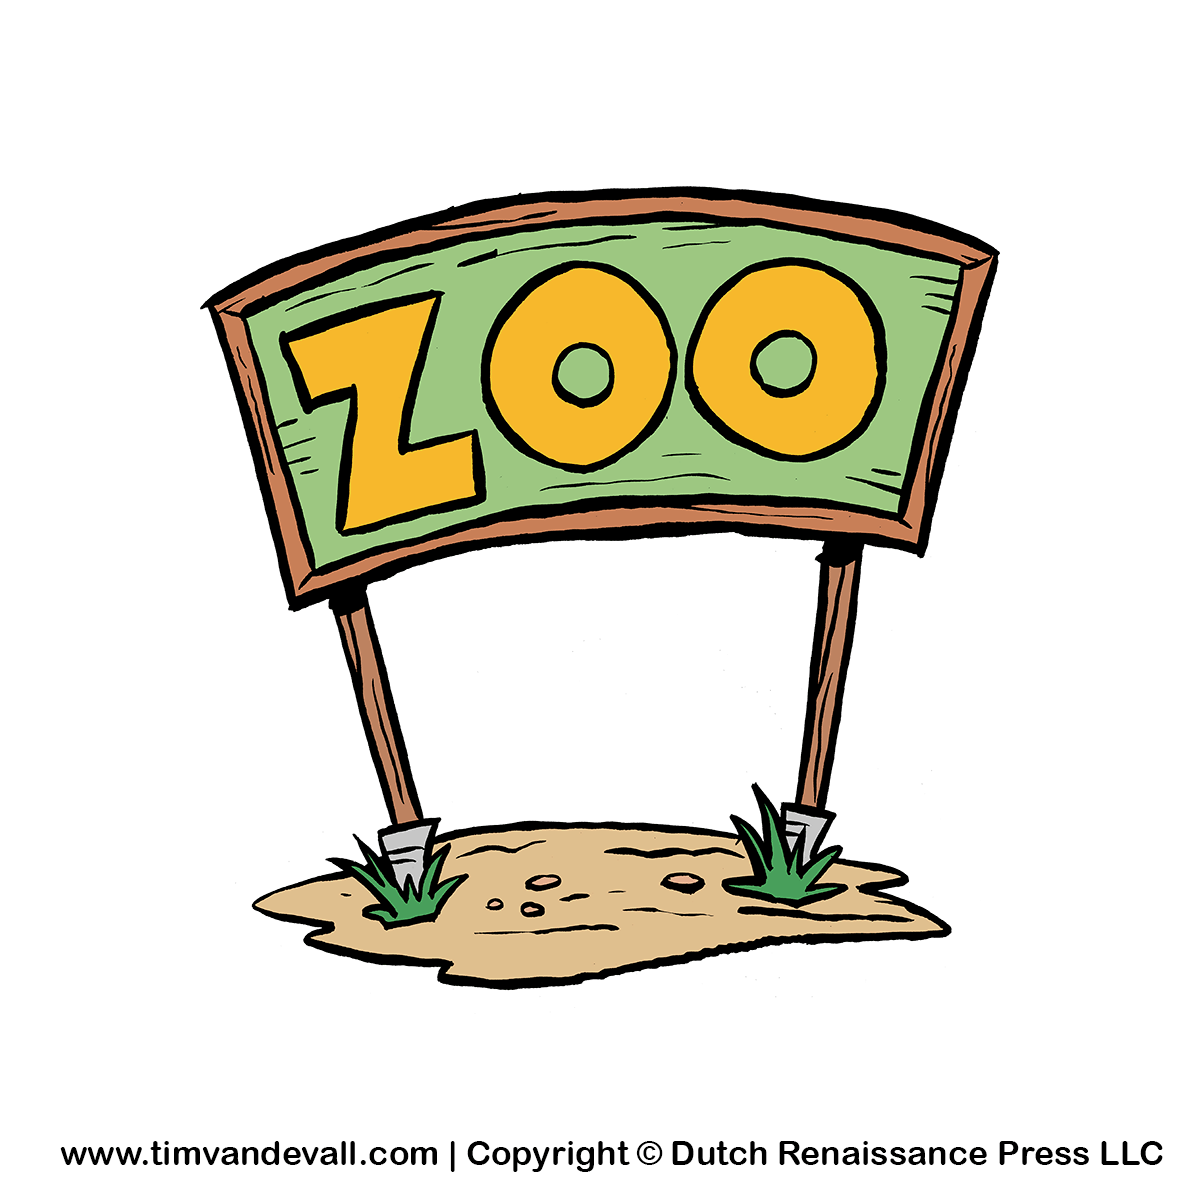 1200x1200 Zoo Sign Clip Art